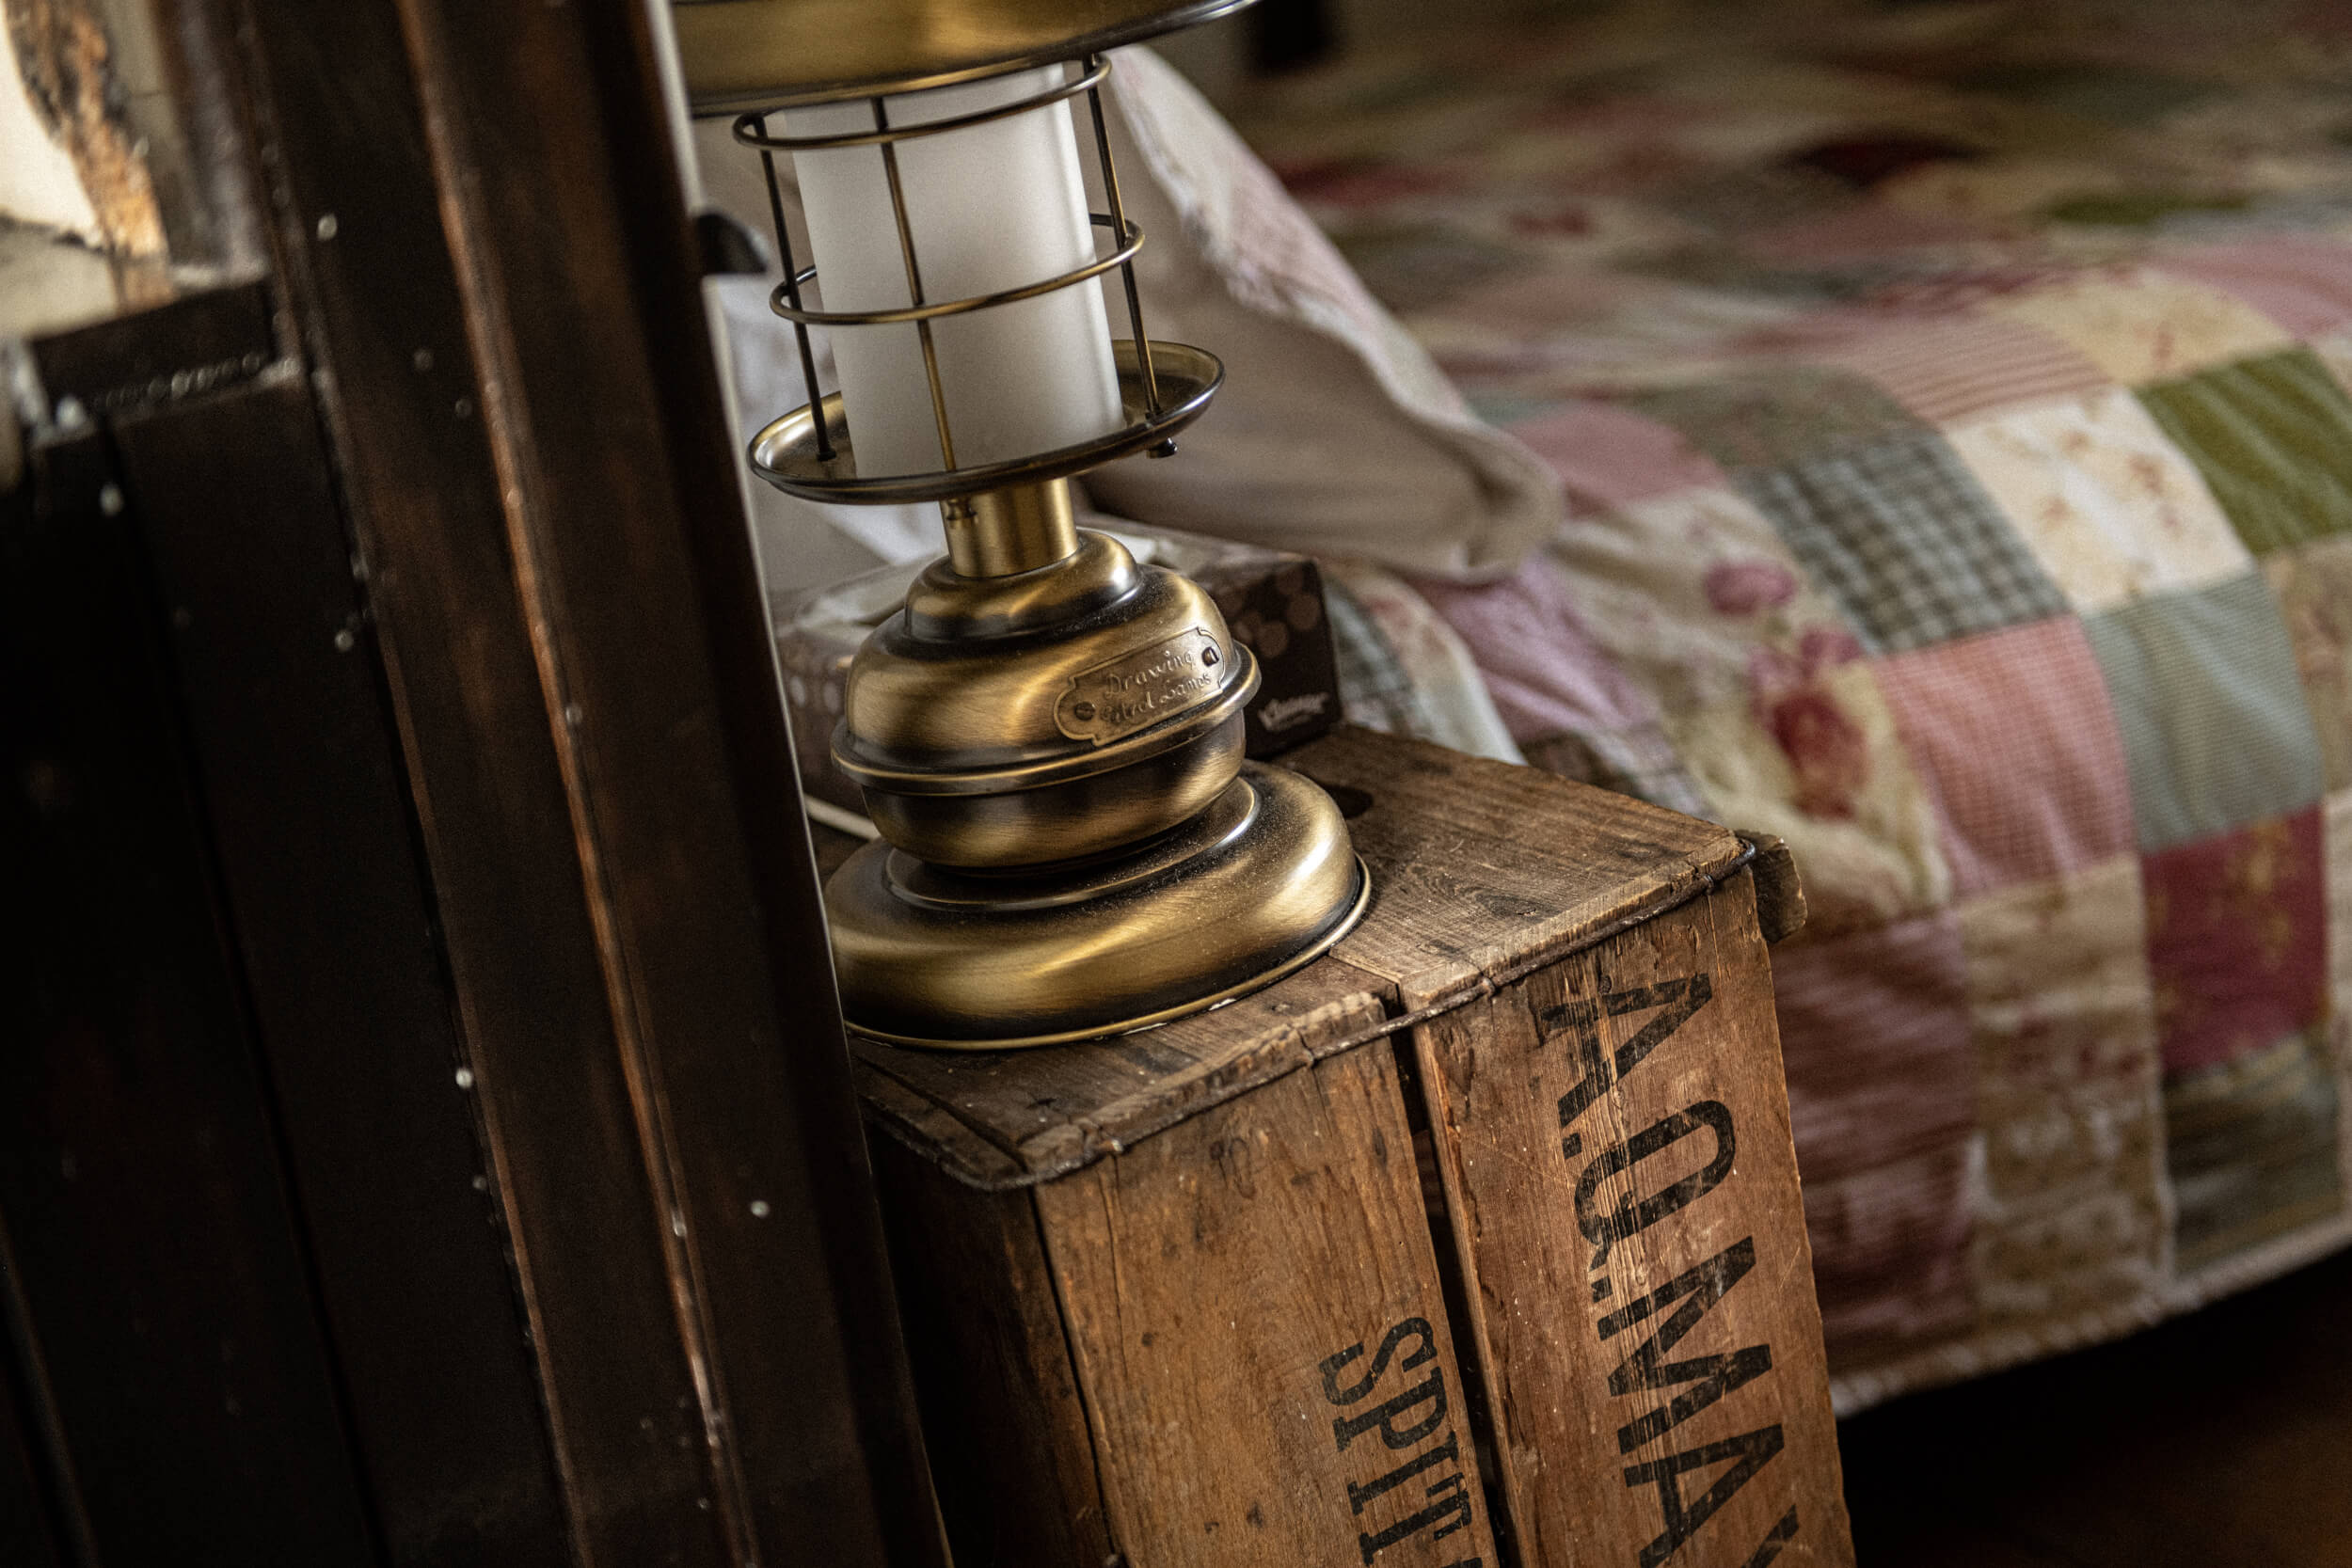 Close up of a lamp on side table